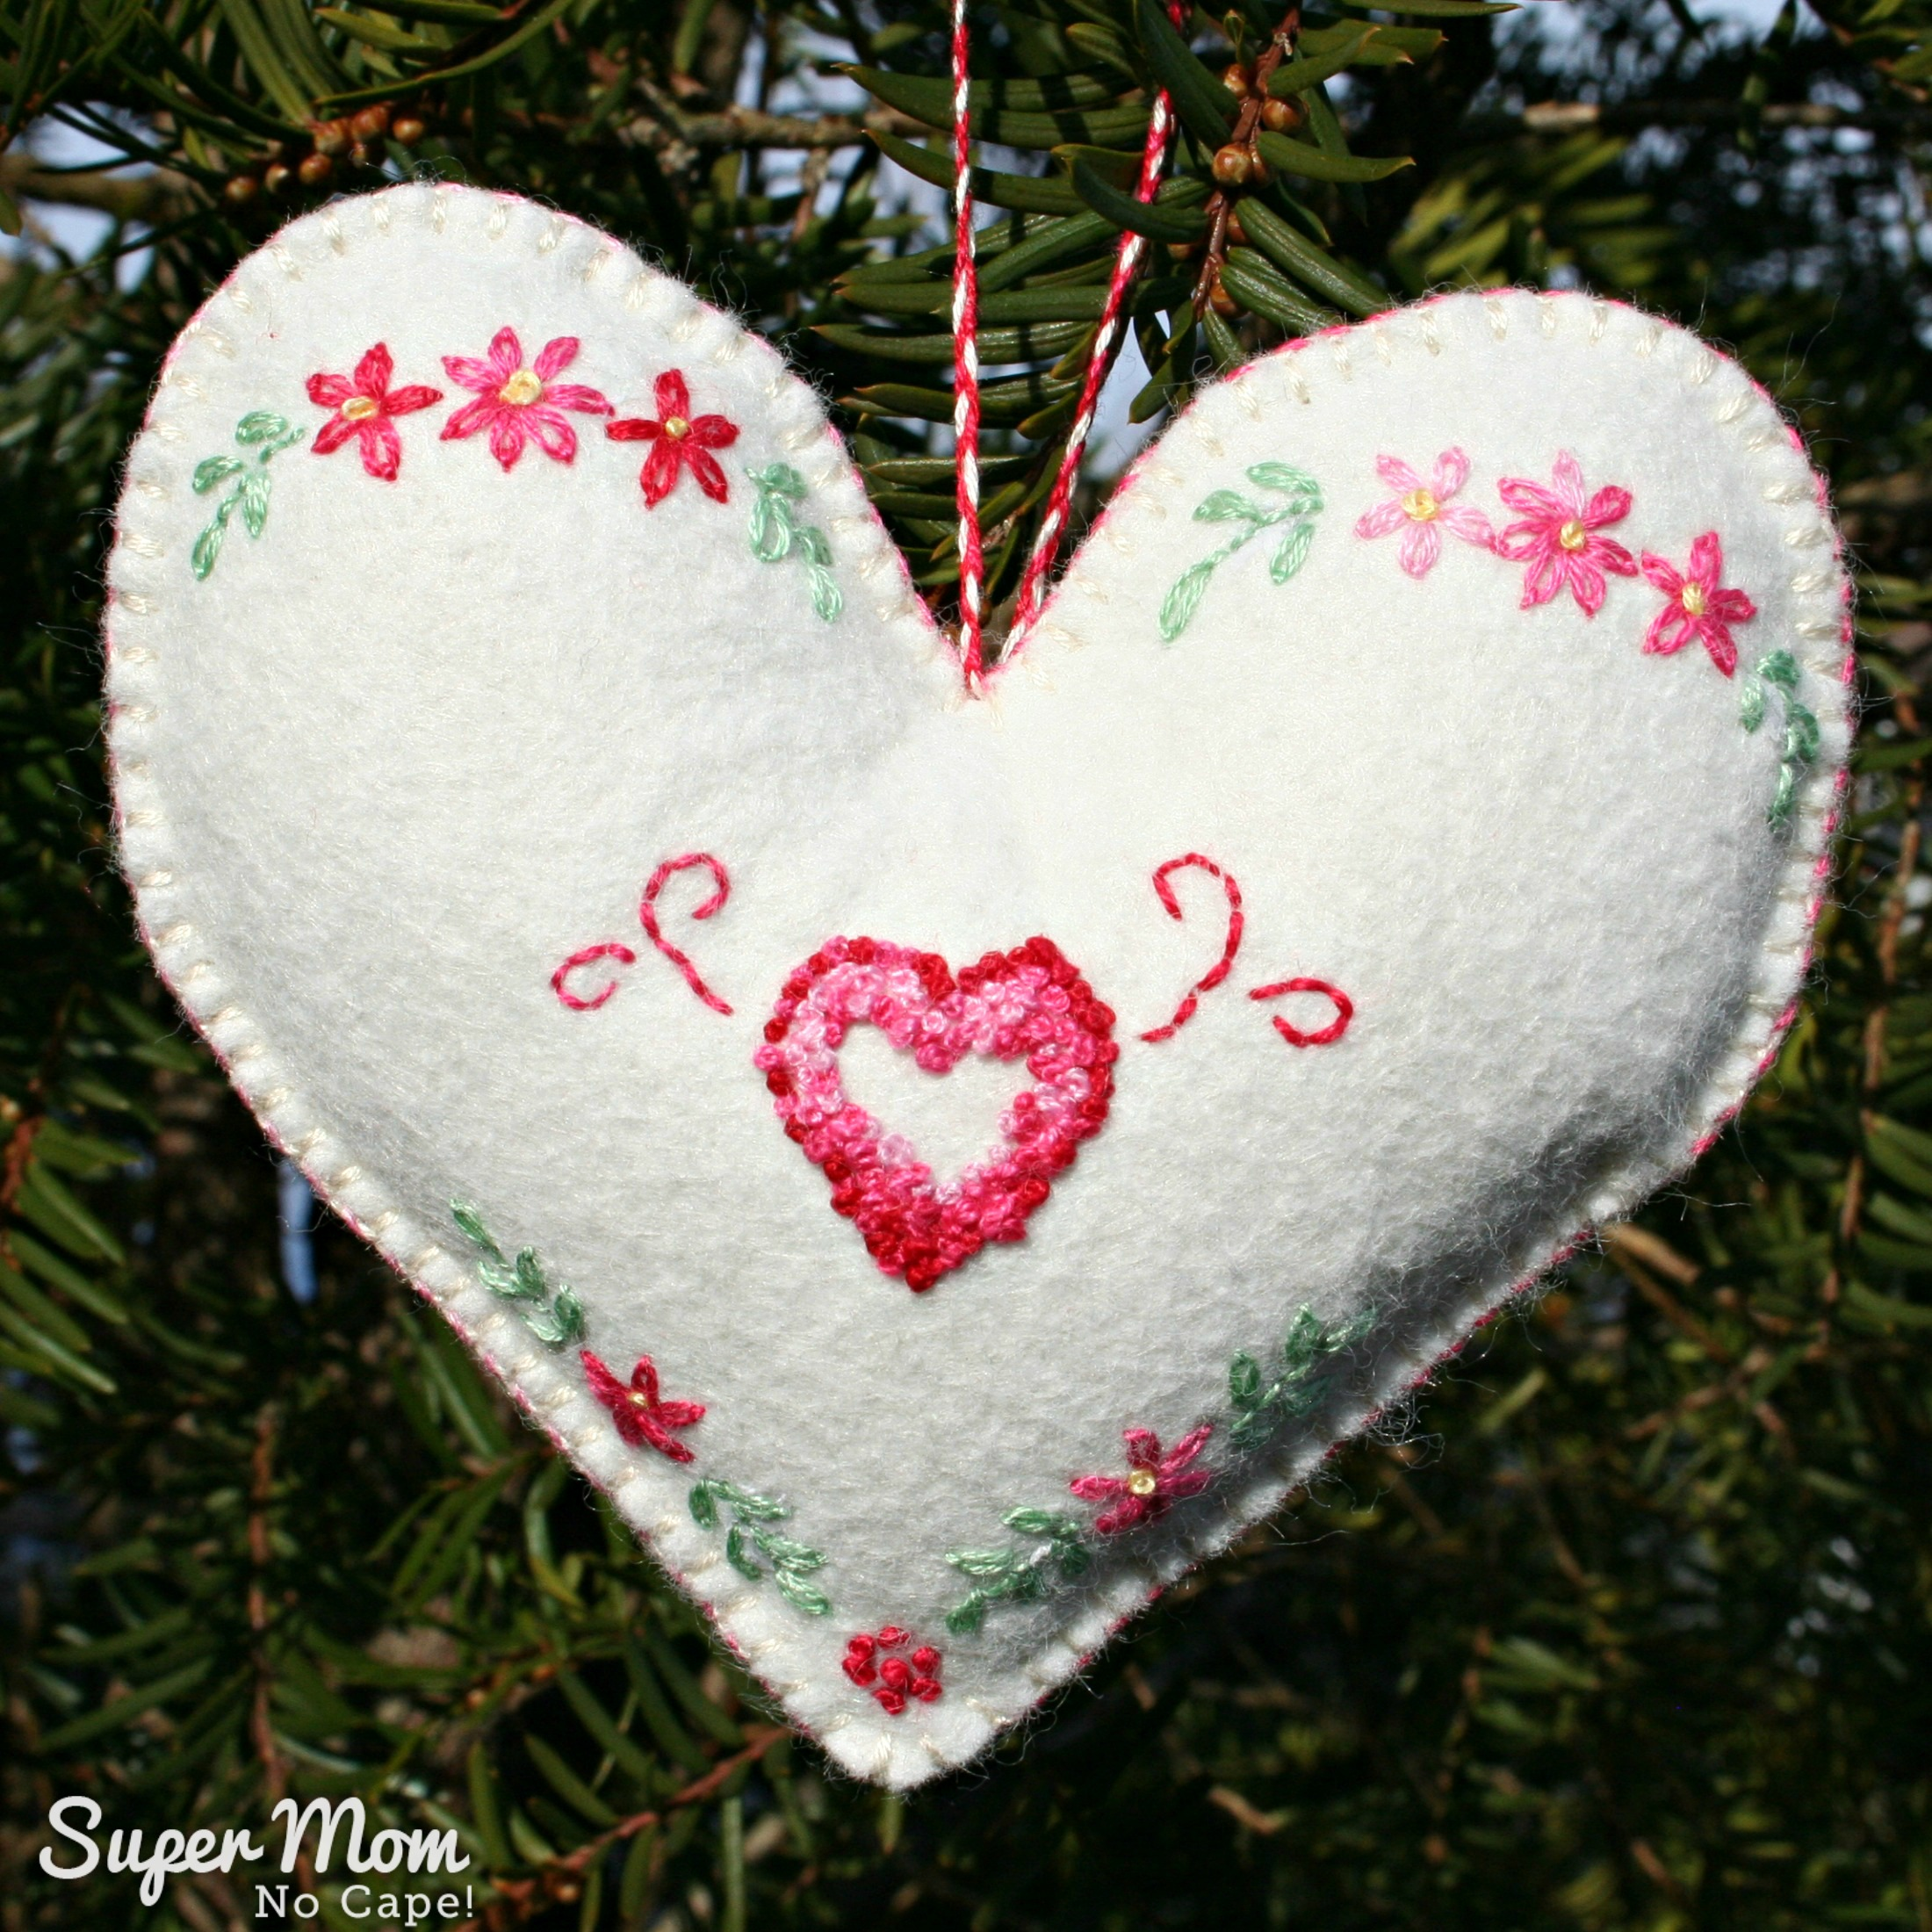 Heart Within a Heart Embroidered Ornament